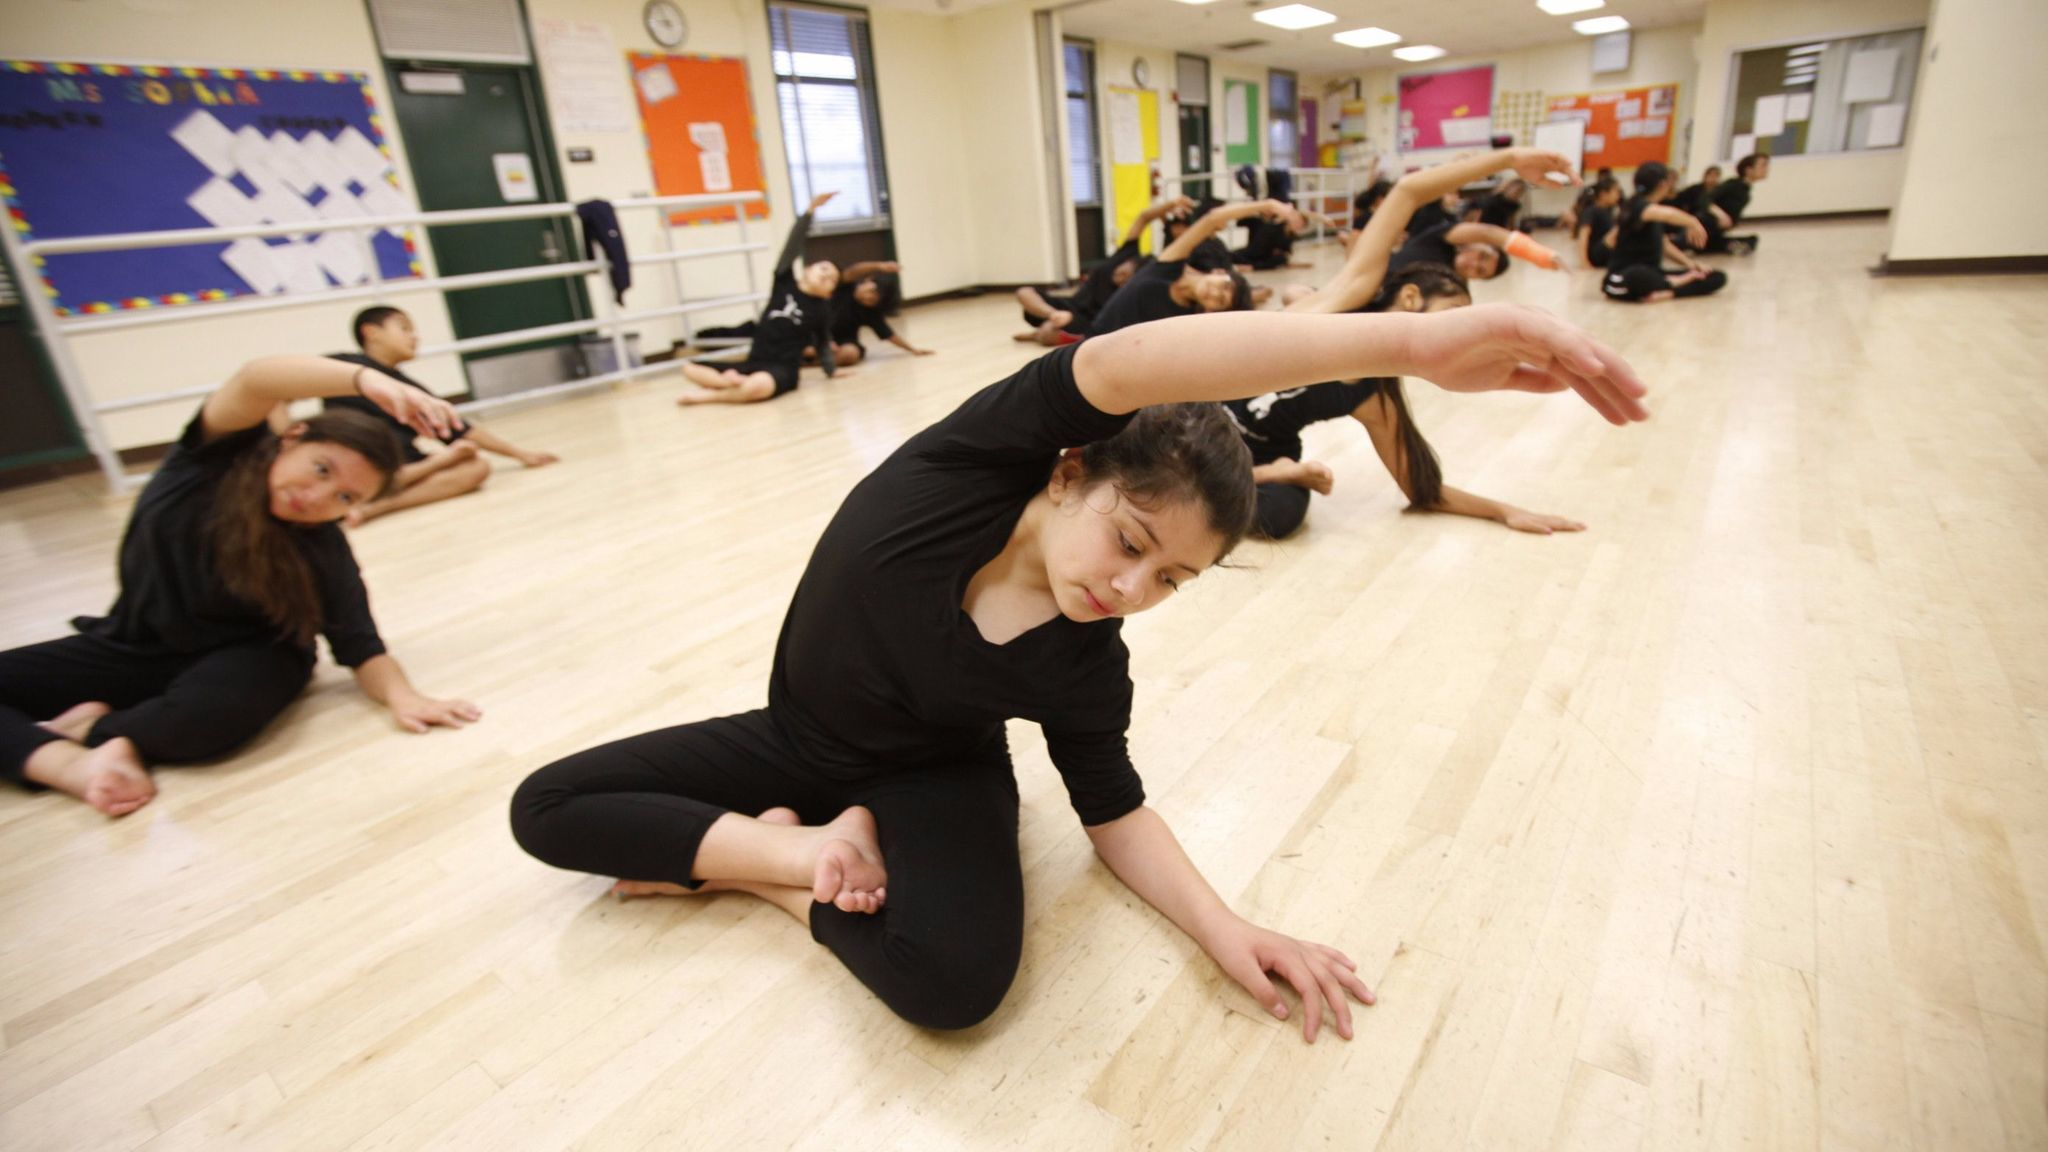 Charter school leaders hope changes to L.A. Unified's rules will result in long-term leases for charters on district property, like the one for dance-focused Gabriella Charter School at Logan Elementary in Echo Park.